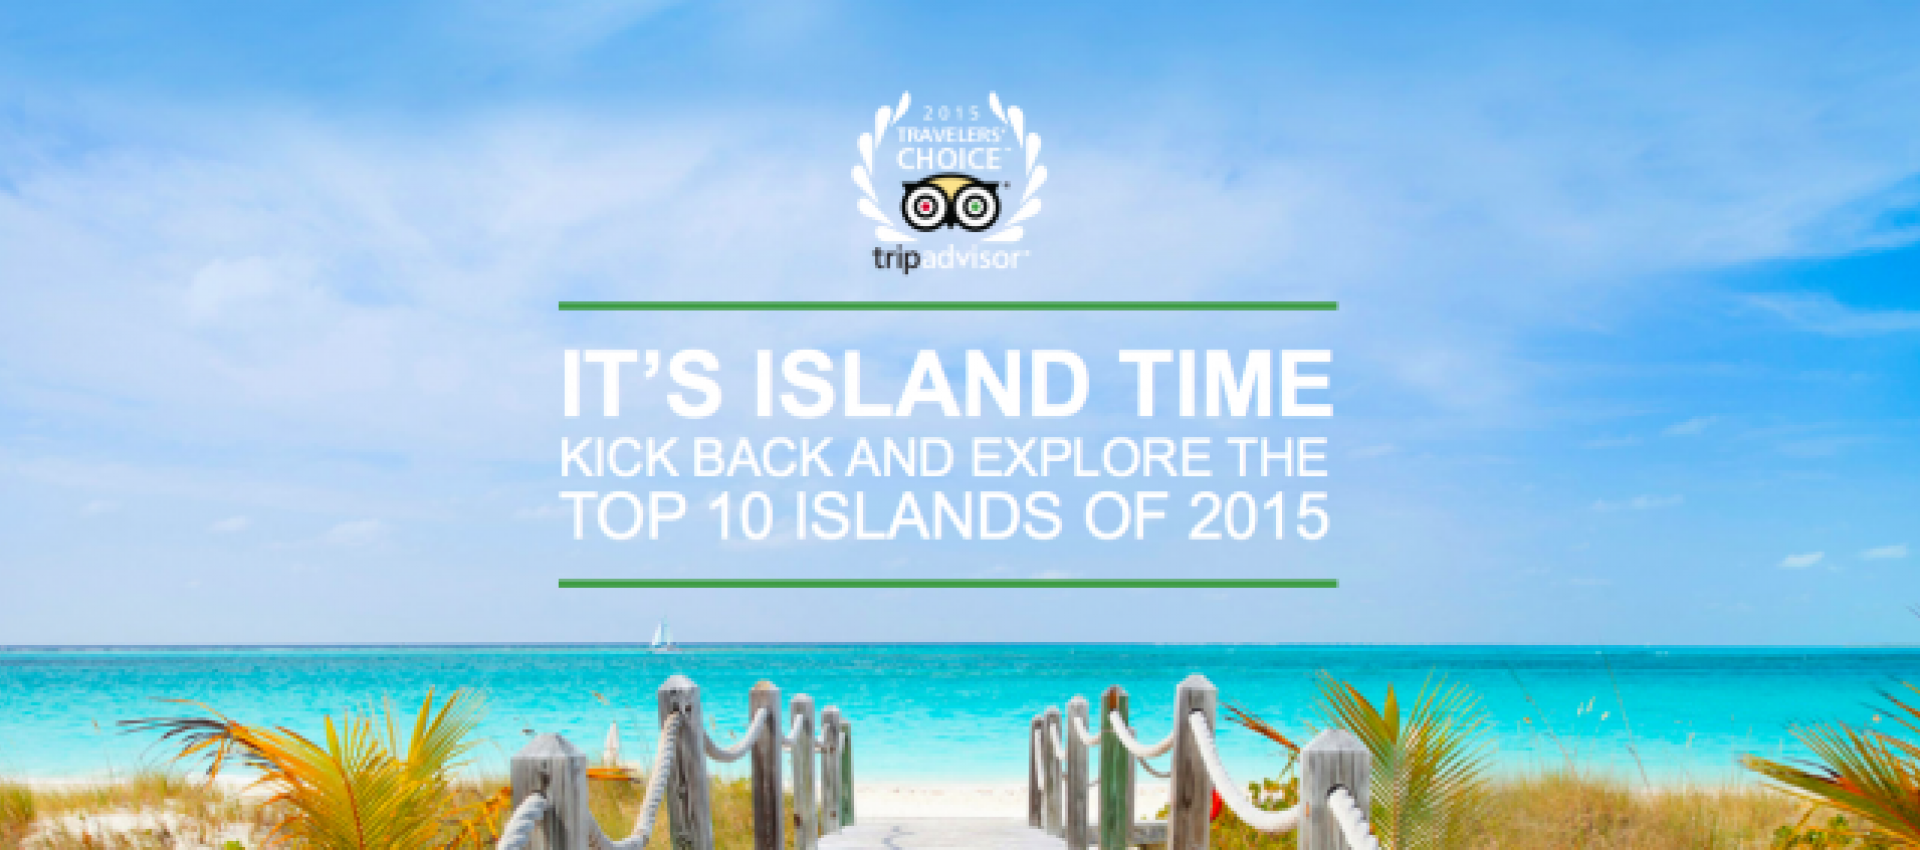 Ad for trip advisor saying It's Island Time over a beach landscape